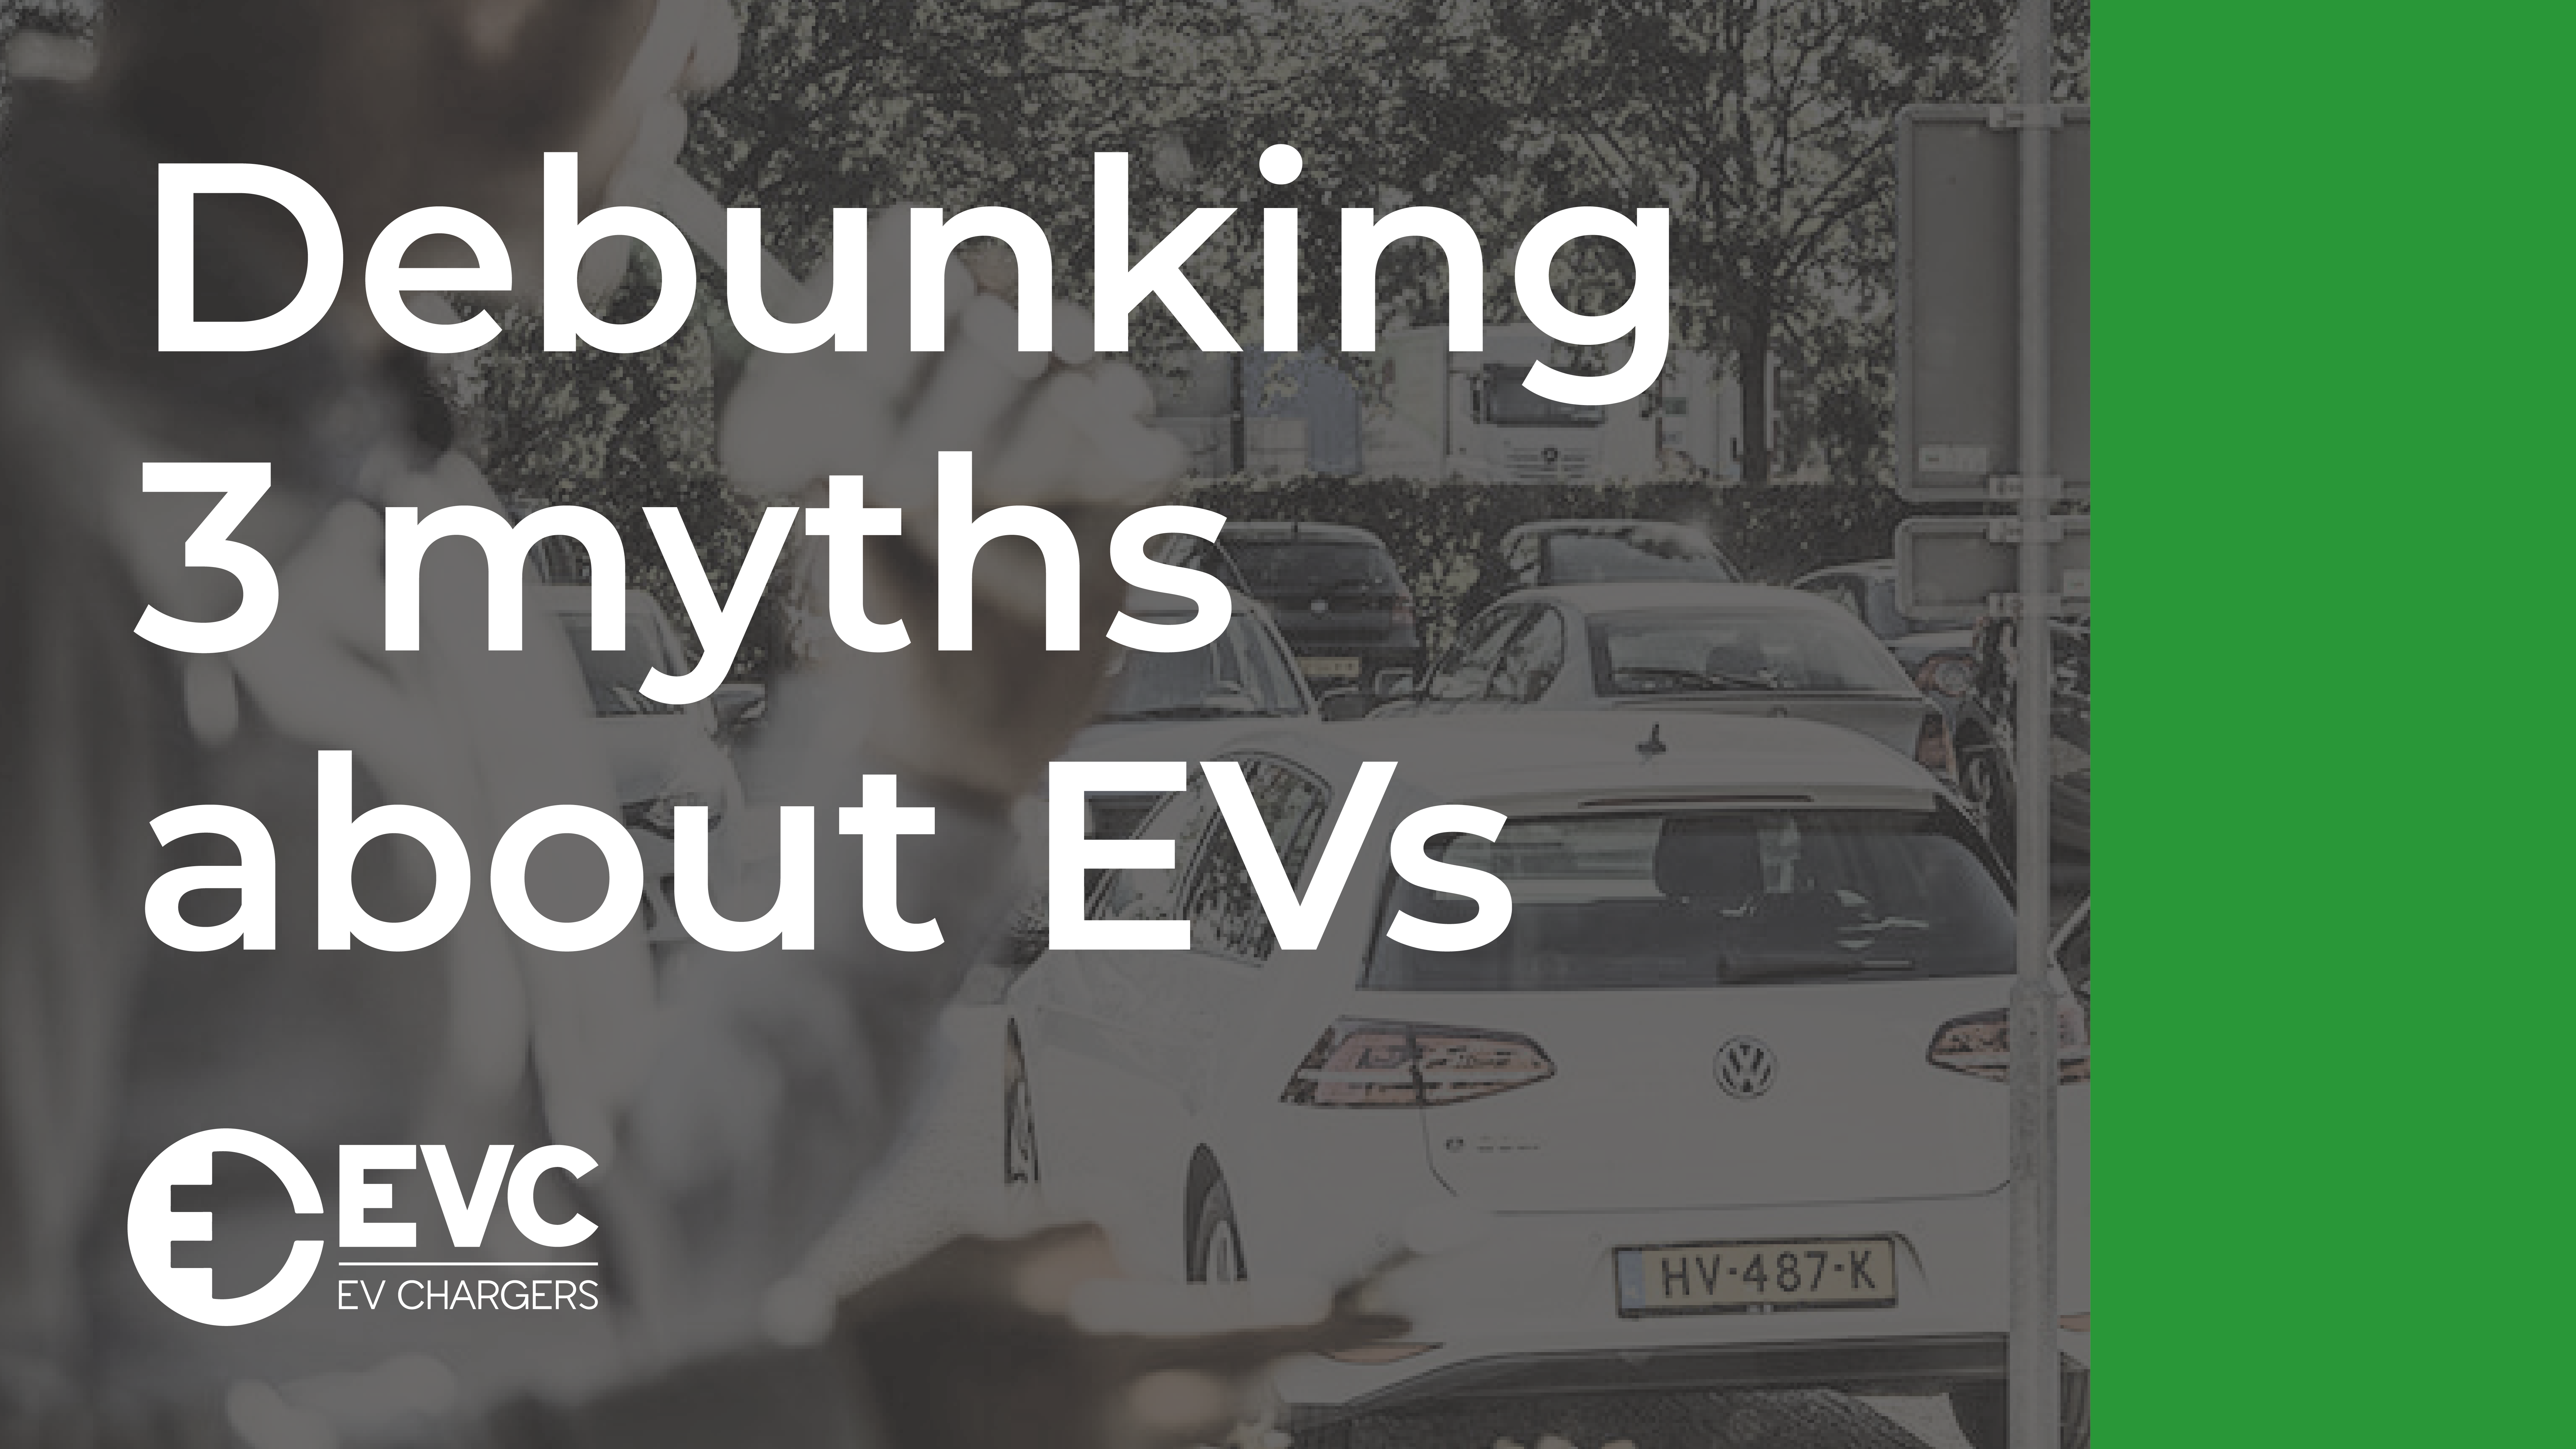 Debunking 3 myths about EVs